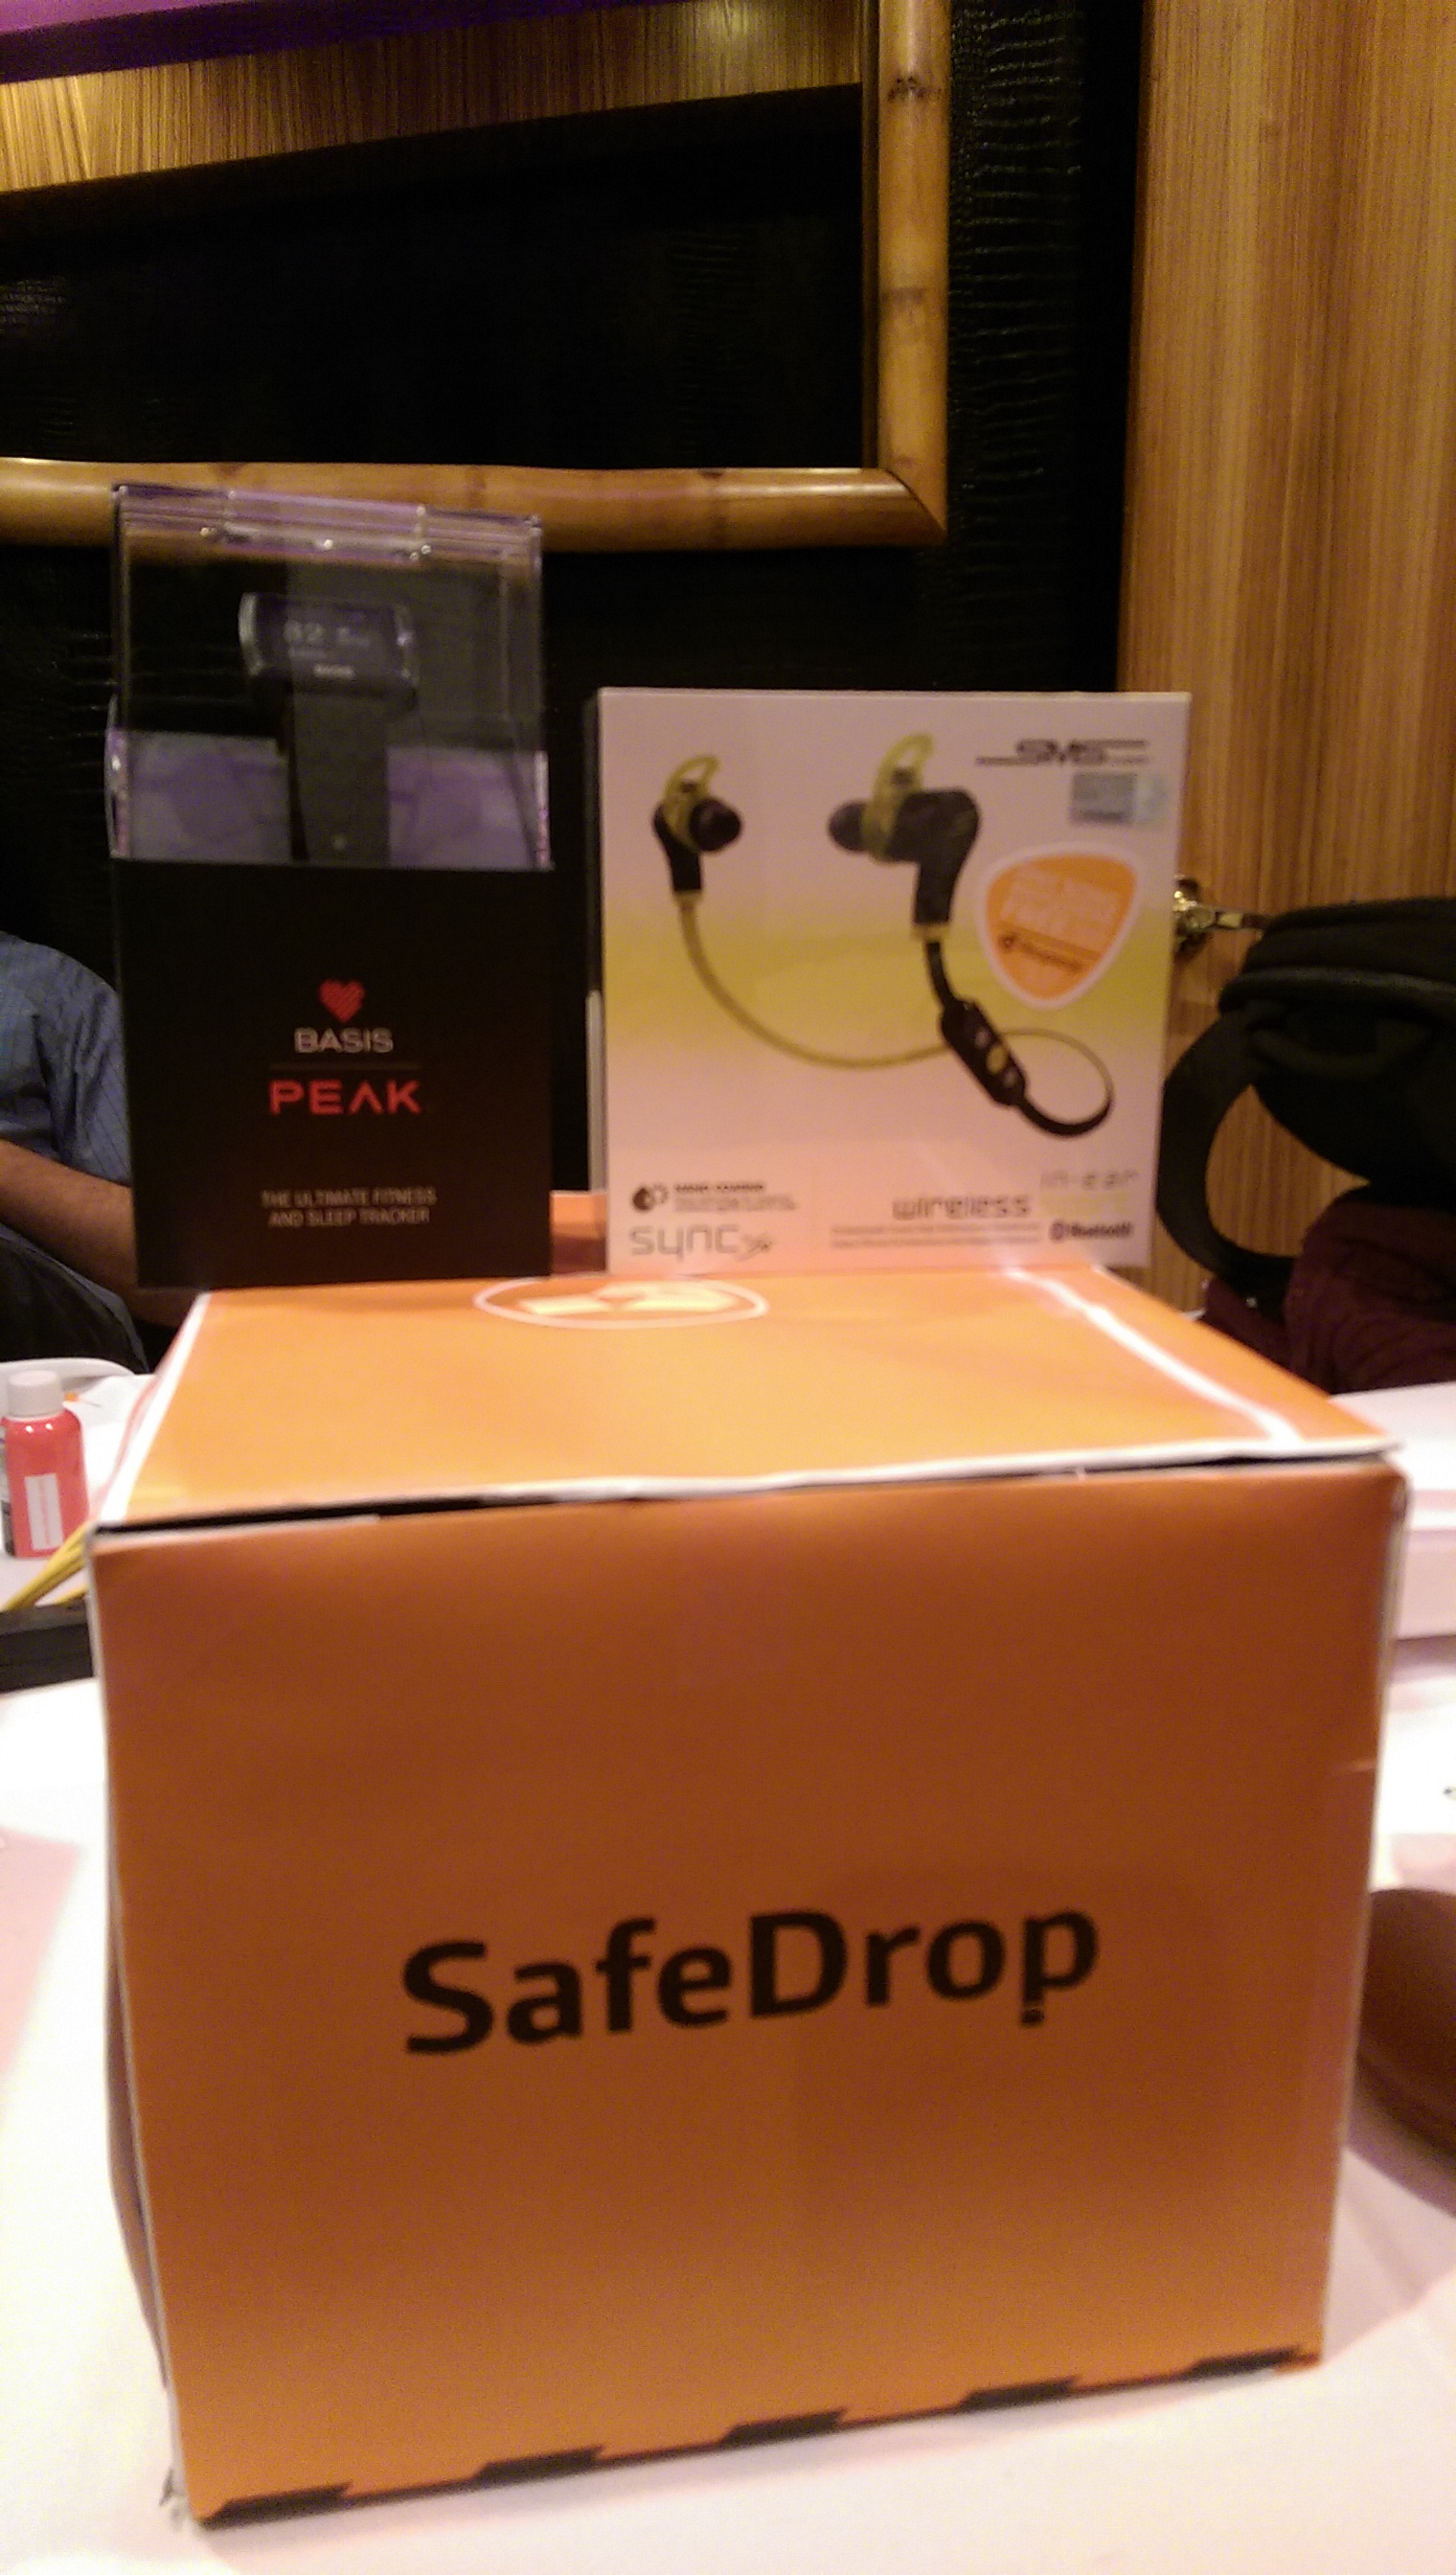 SafeDrop won 2nd place of Best Use of Intel Edison, with prizes